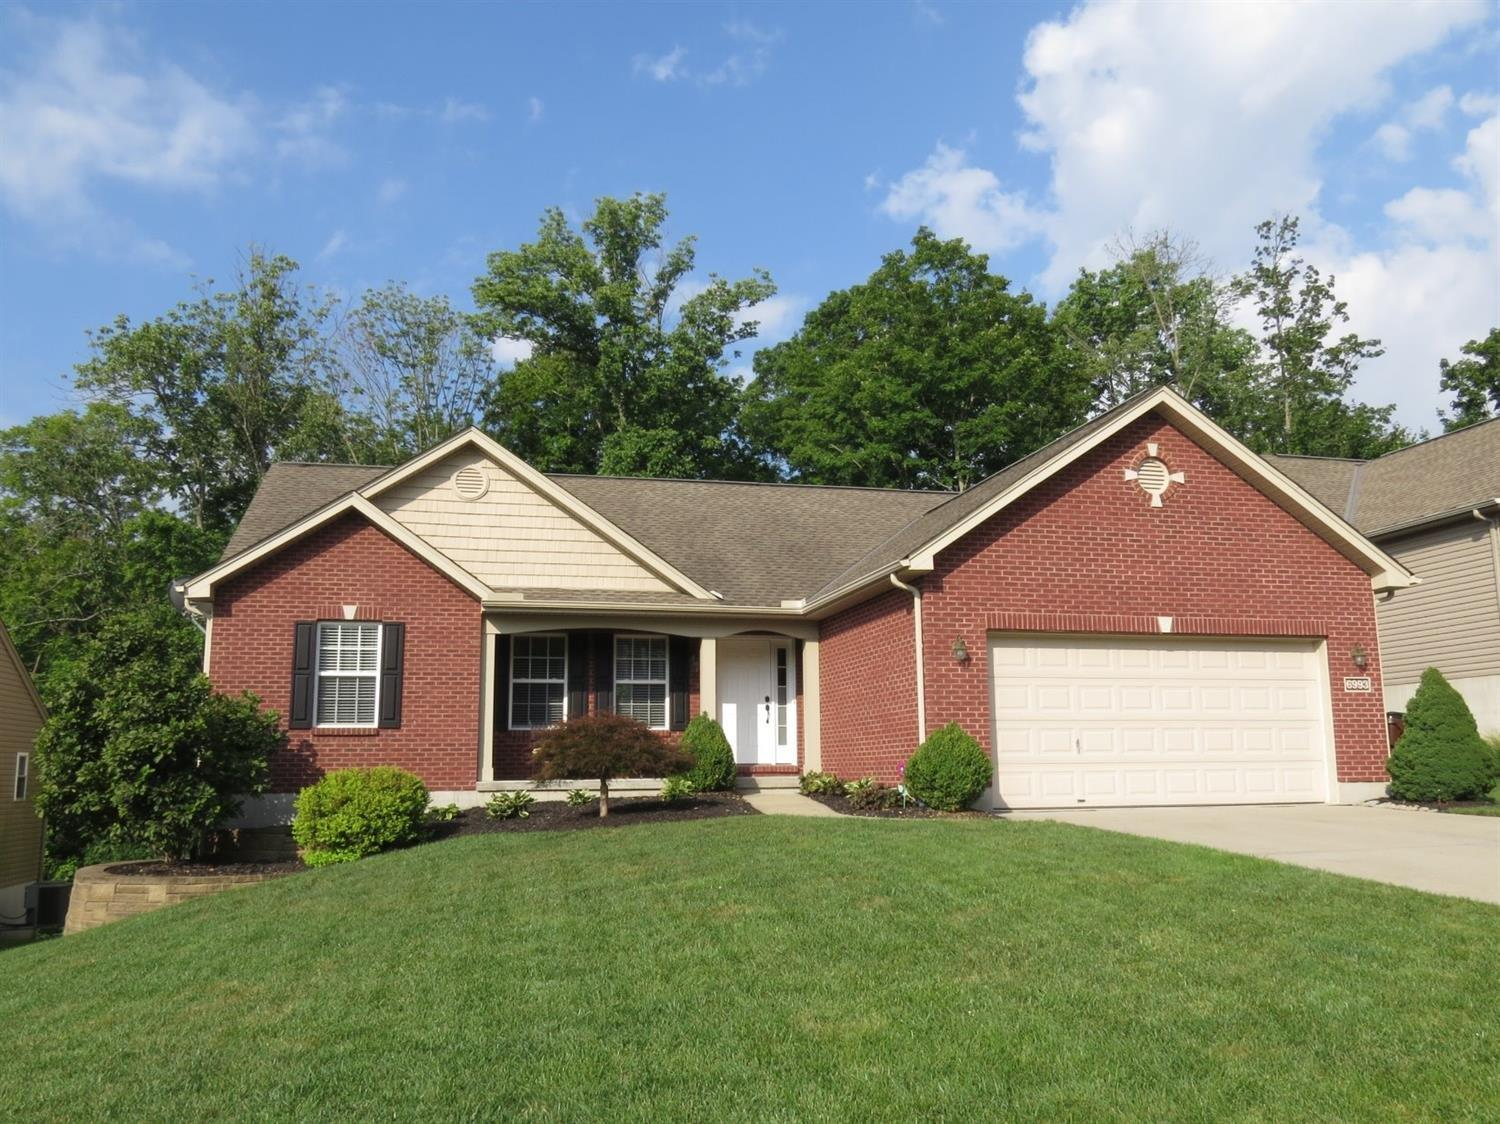 Photo 1 for 6993 Lucia Dr Burlington, KY 41005